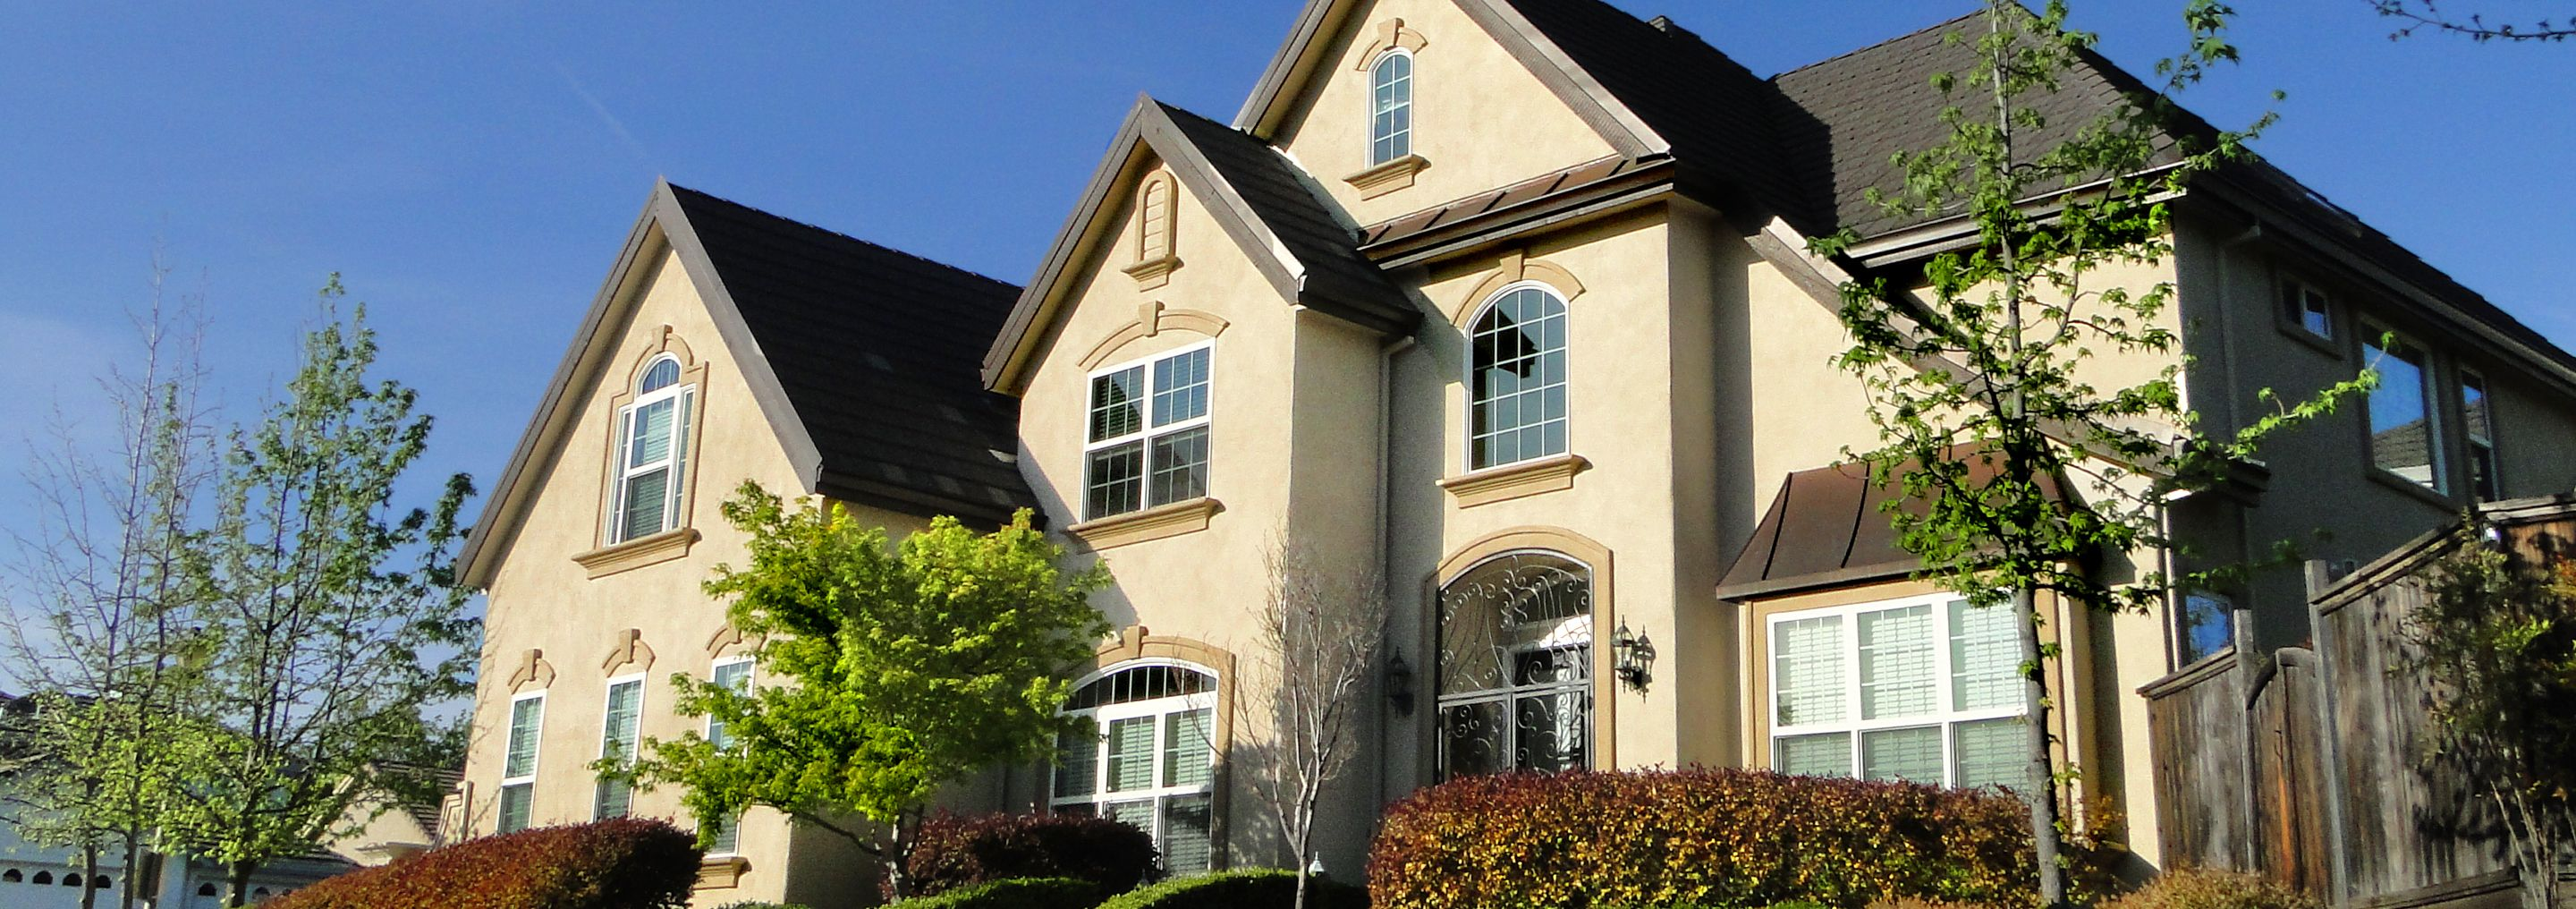 A beautiful home in Rocklin California where Mary Pizzimenti Broker/REALTOR is a long time community expert